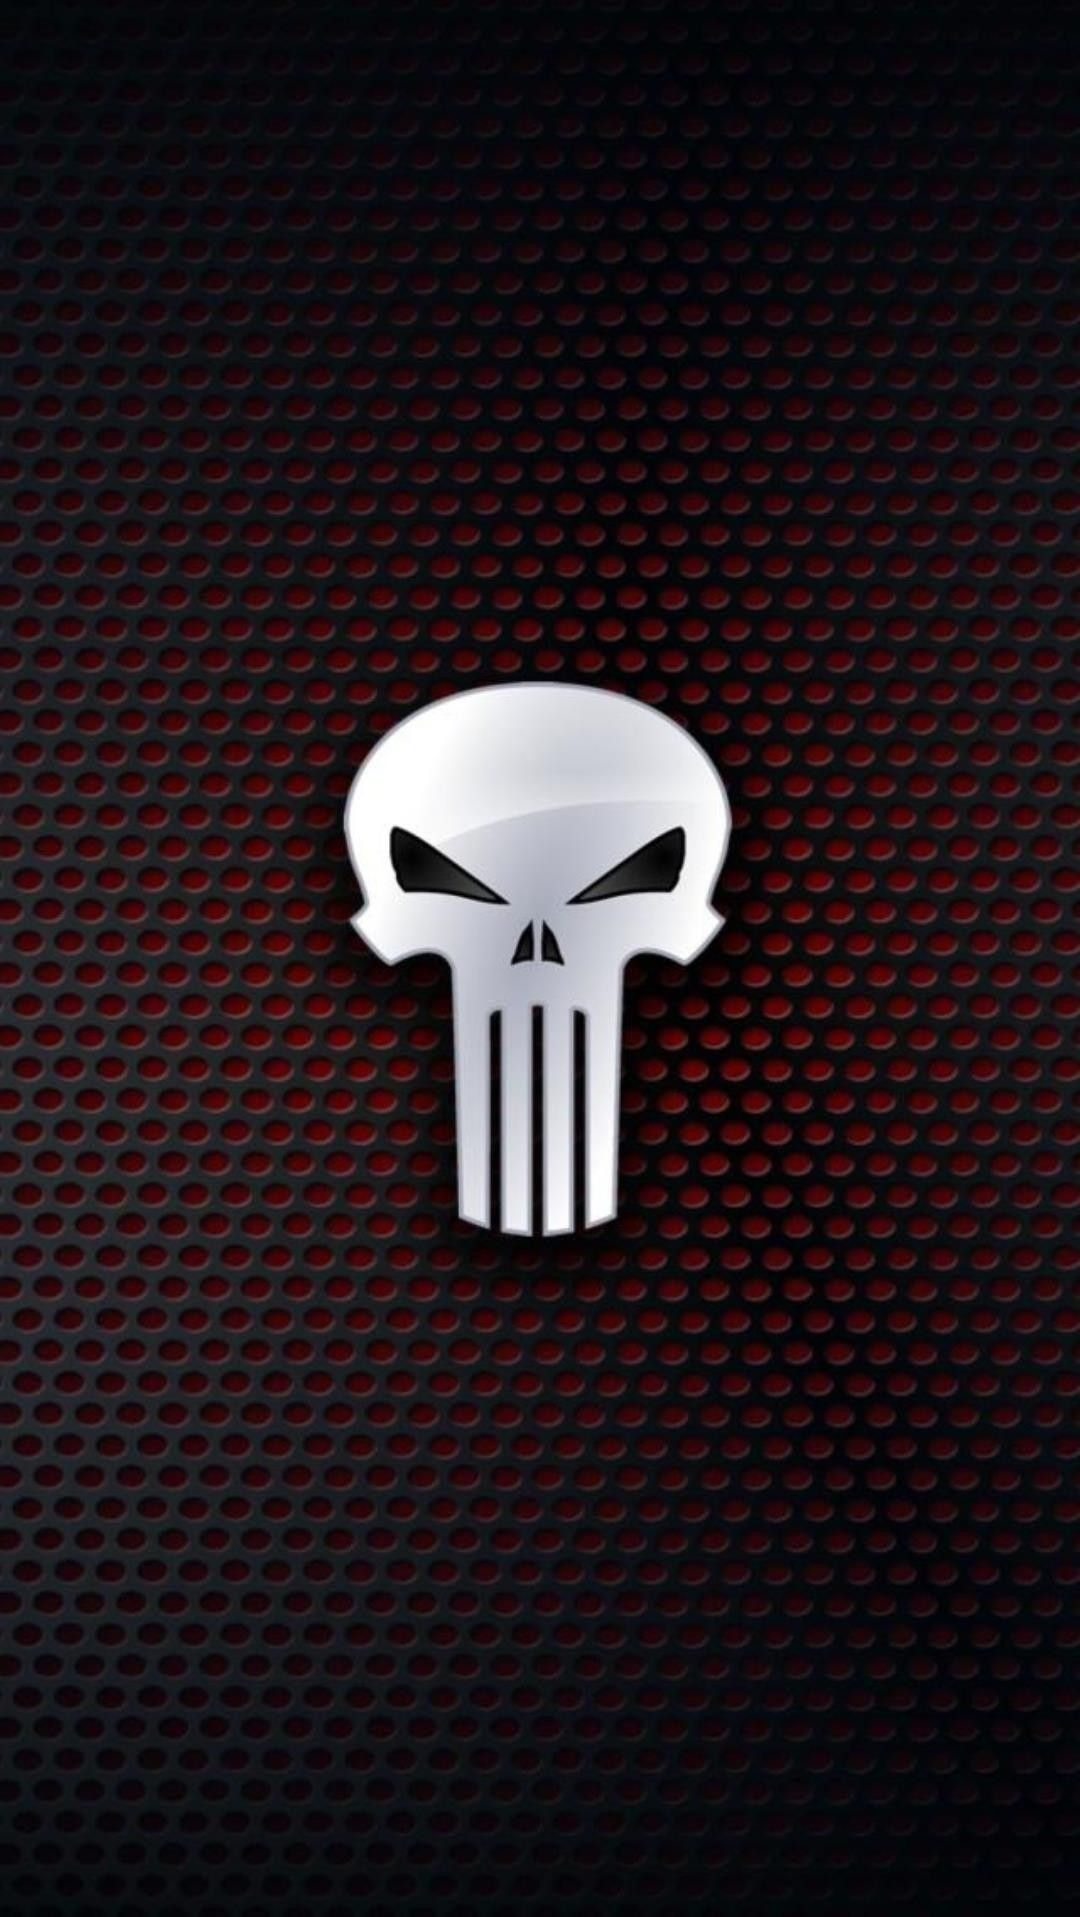 Punisher (With images) Punisher logo, Iphone wallpaper